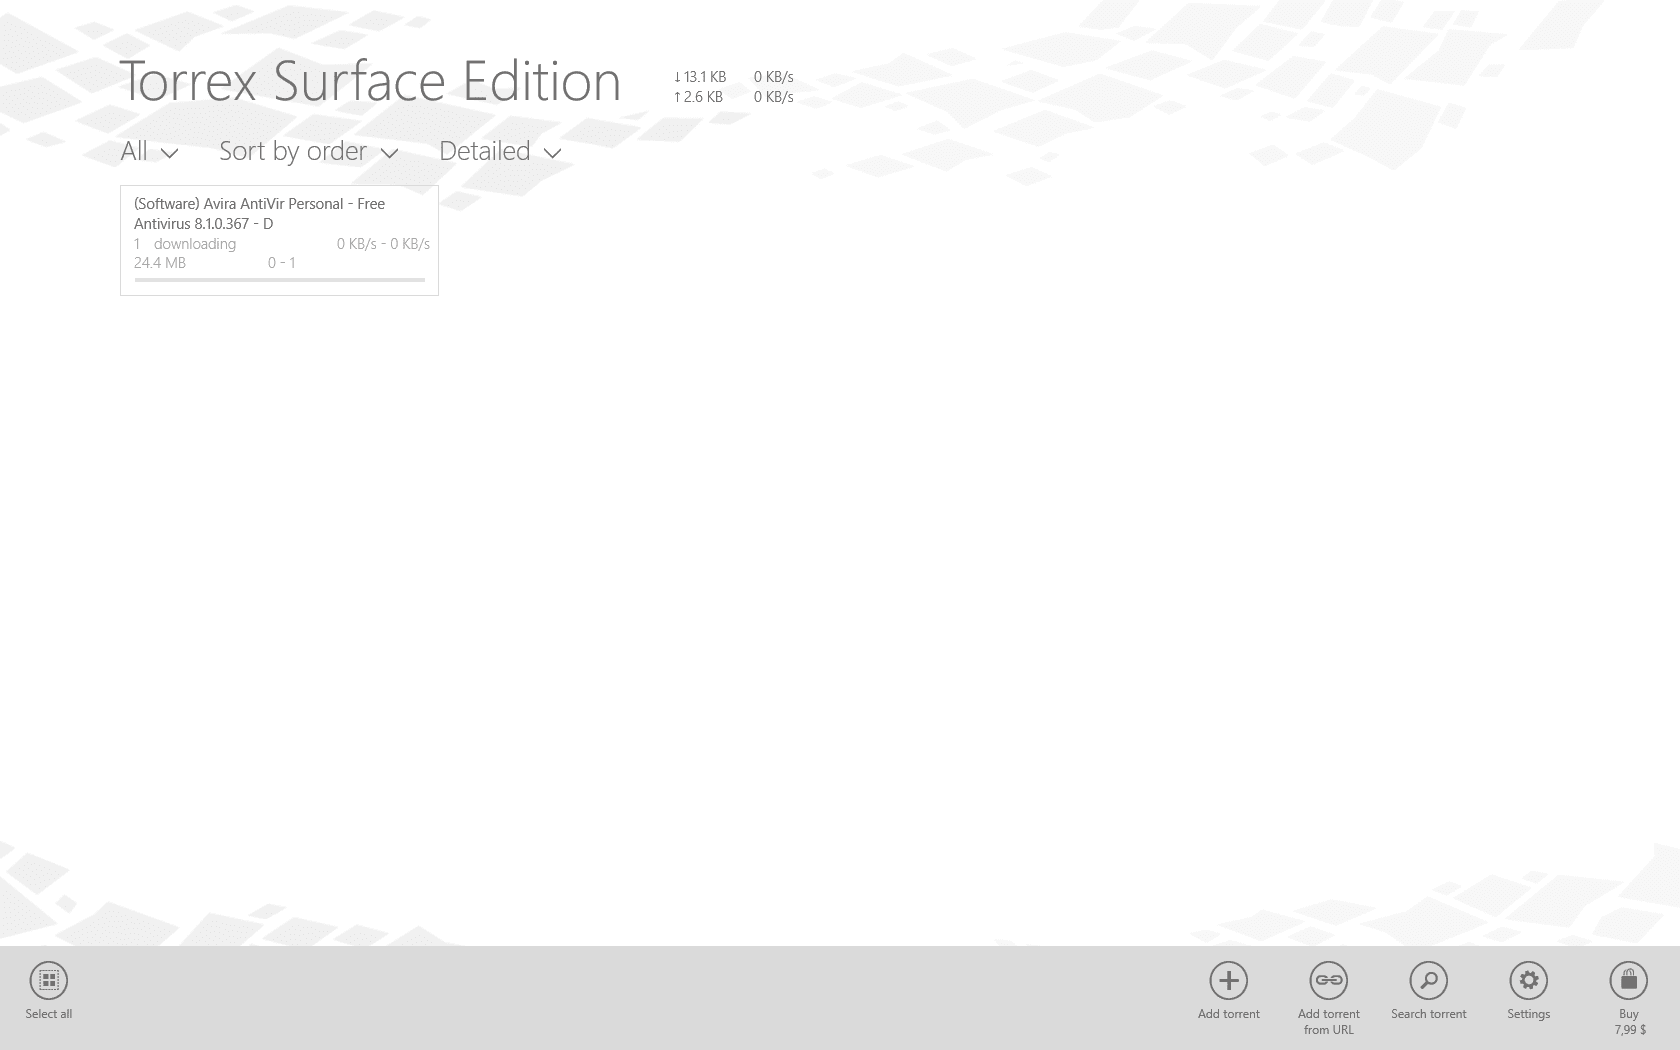 Torrex Surface Edition New